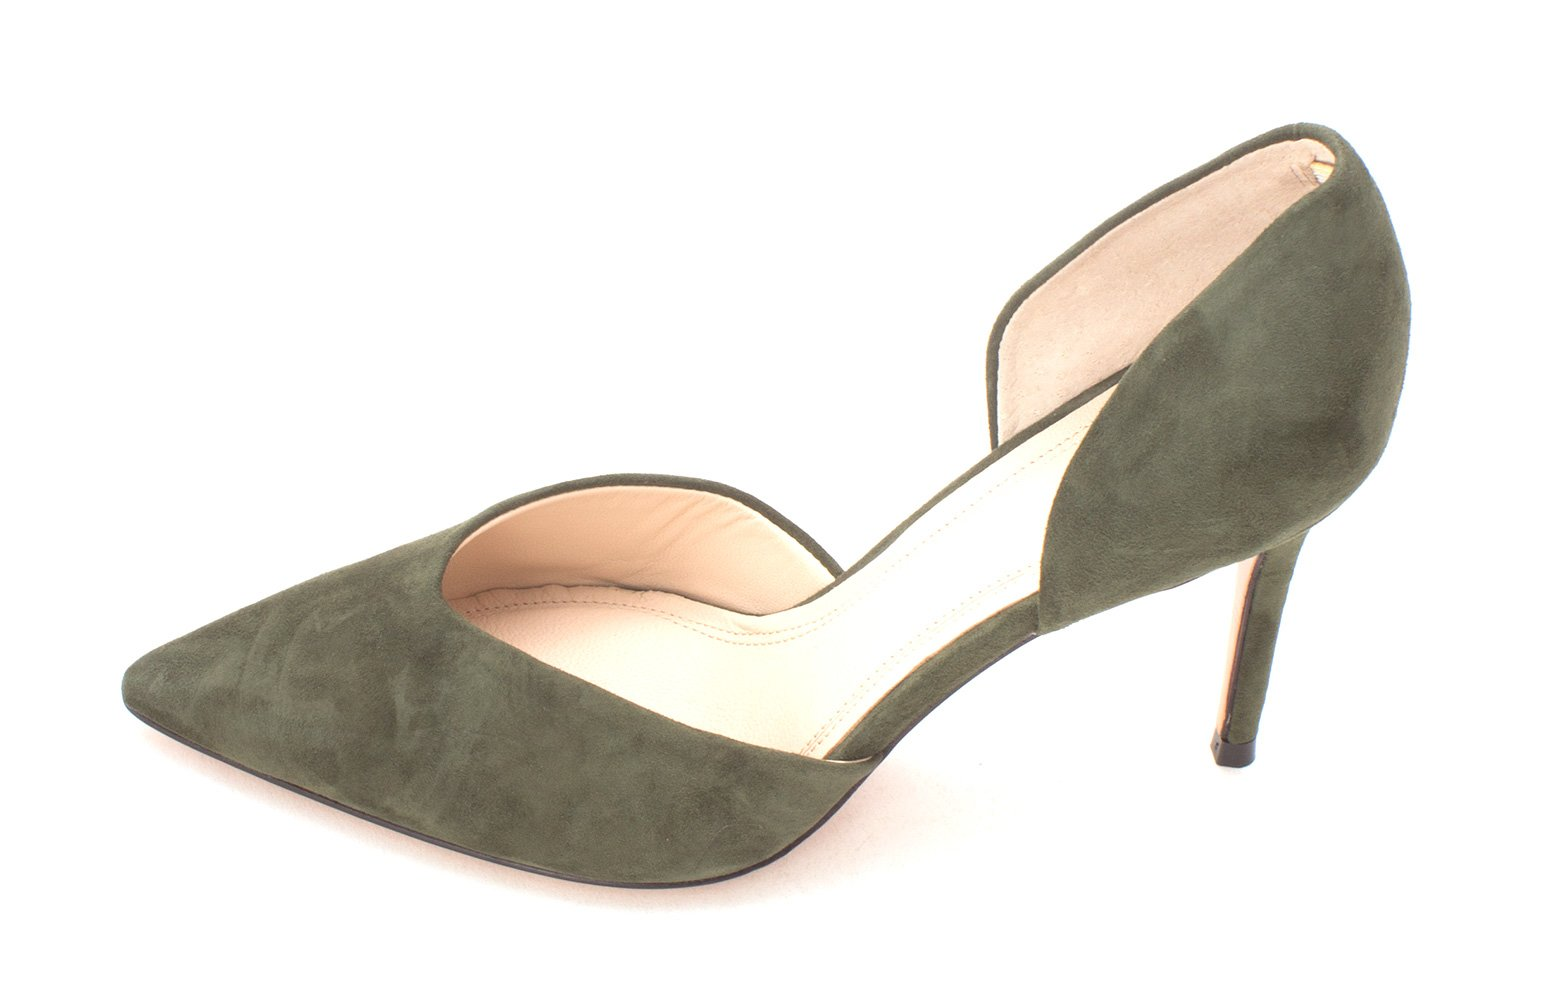 Marc Fisher Womens Tammy Leather Pointed Toe D-Orsay Pumps, Green, Size 5.0